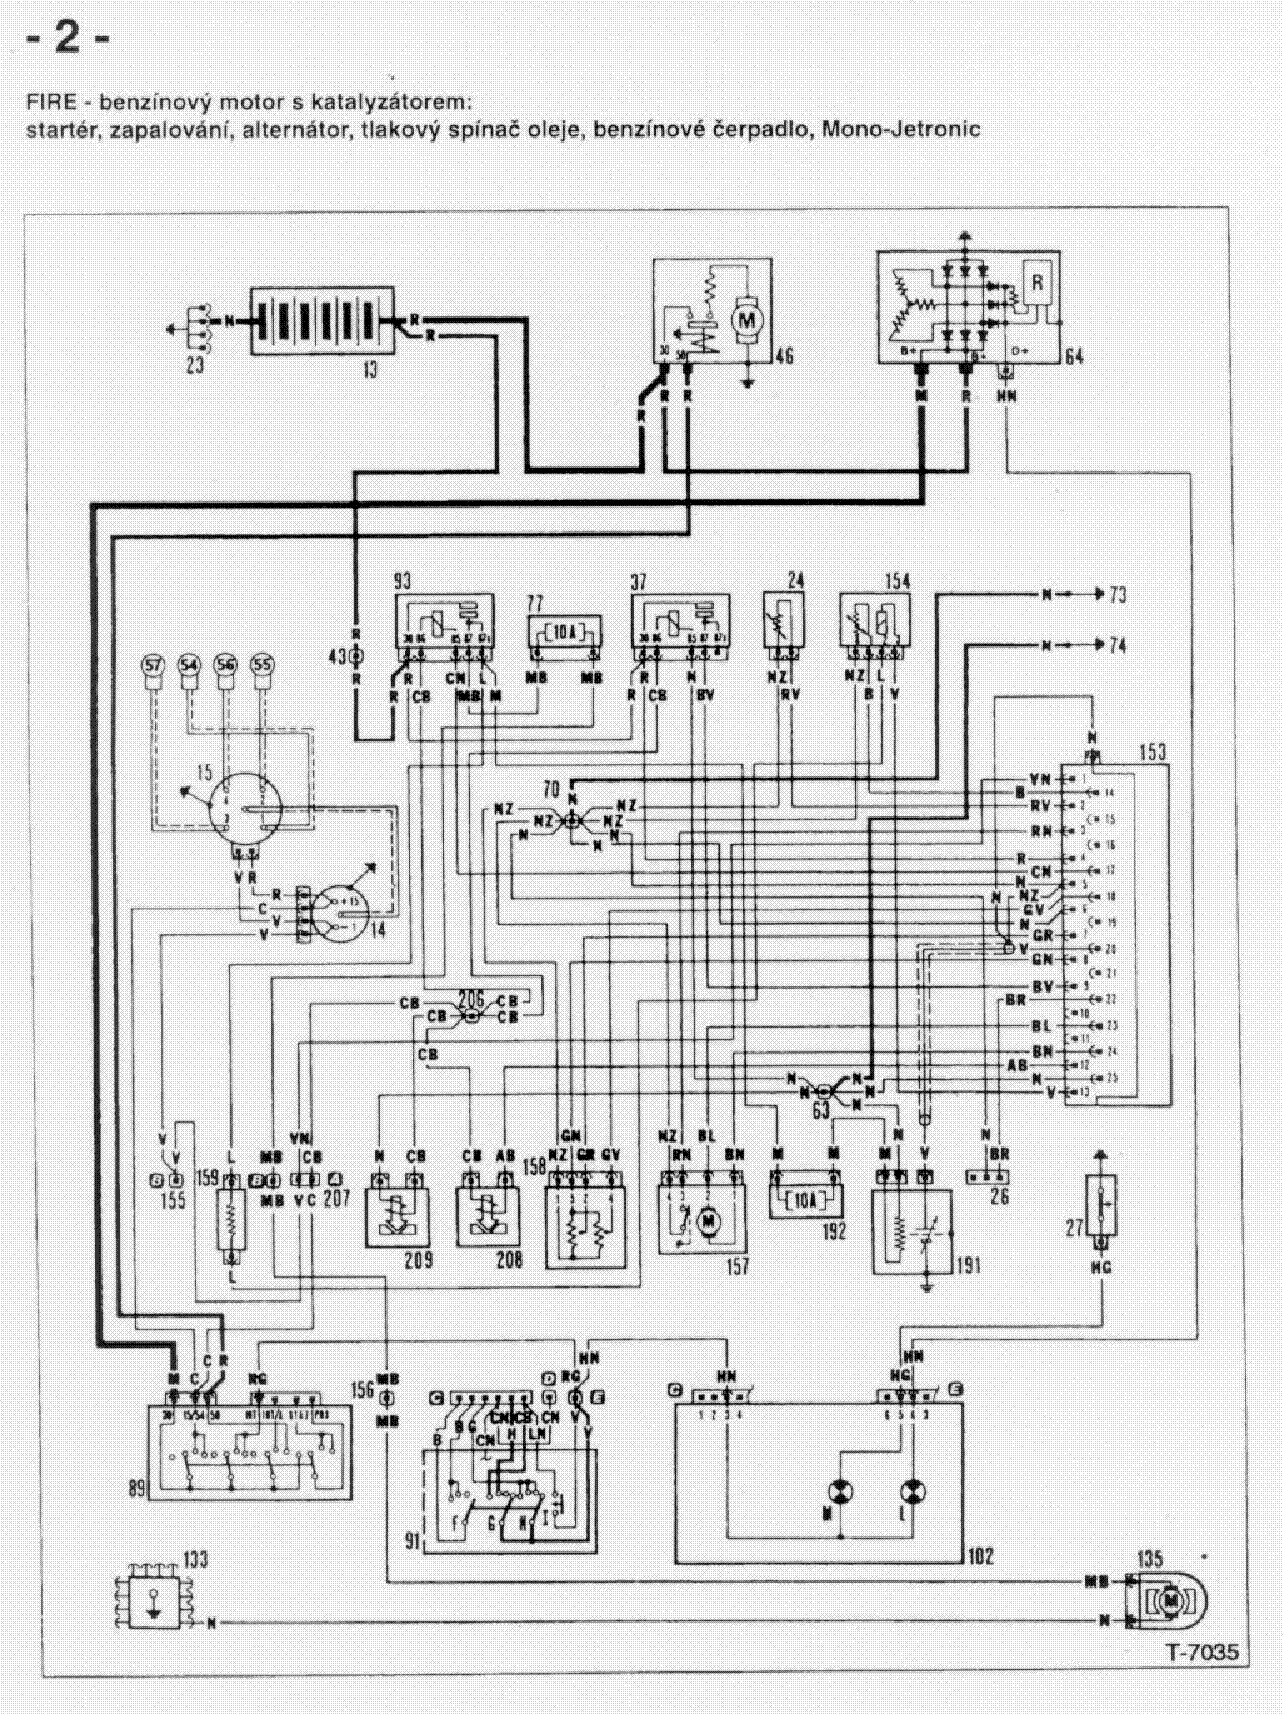 Diagram 76 Fiat Wiring Diagram Full Version Hd Quality Wiring Diagram Rootwiringk Mormilearredamenti It